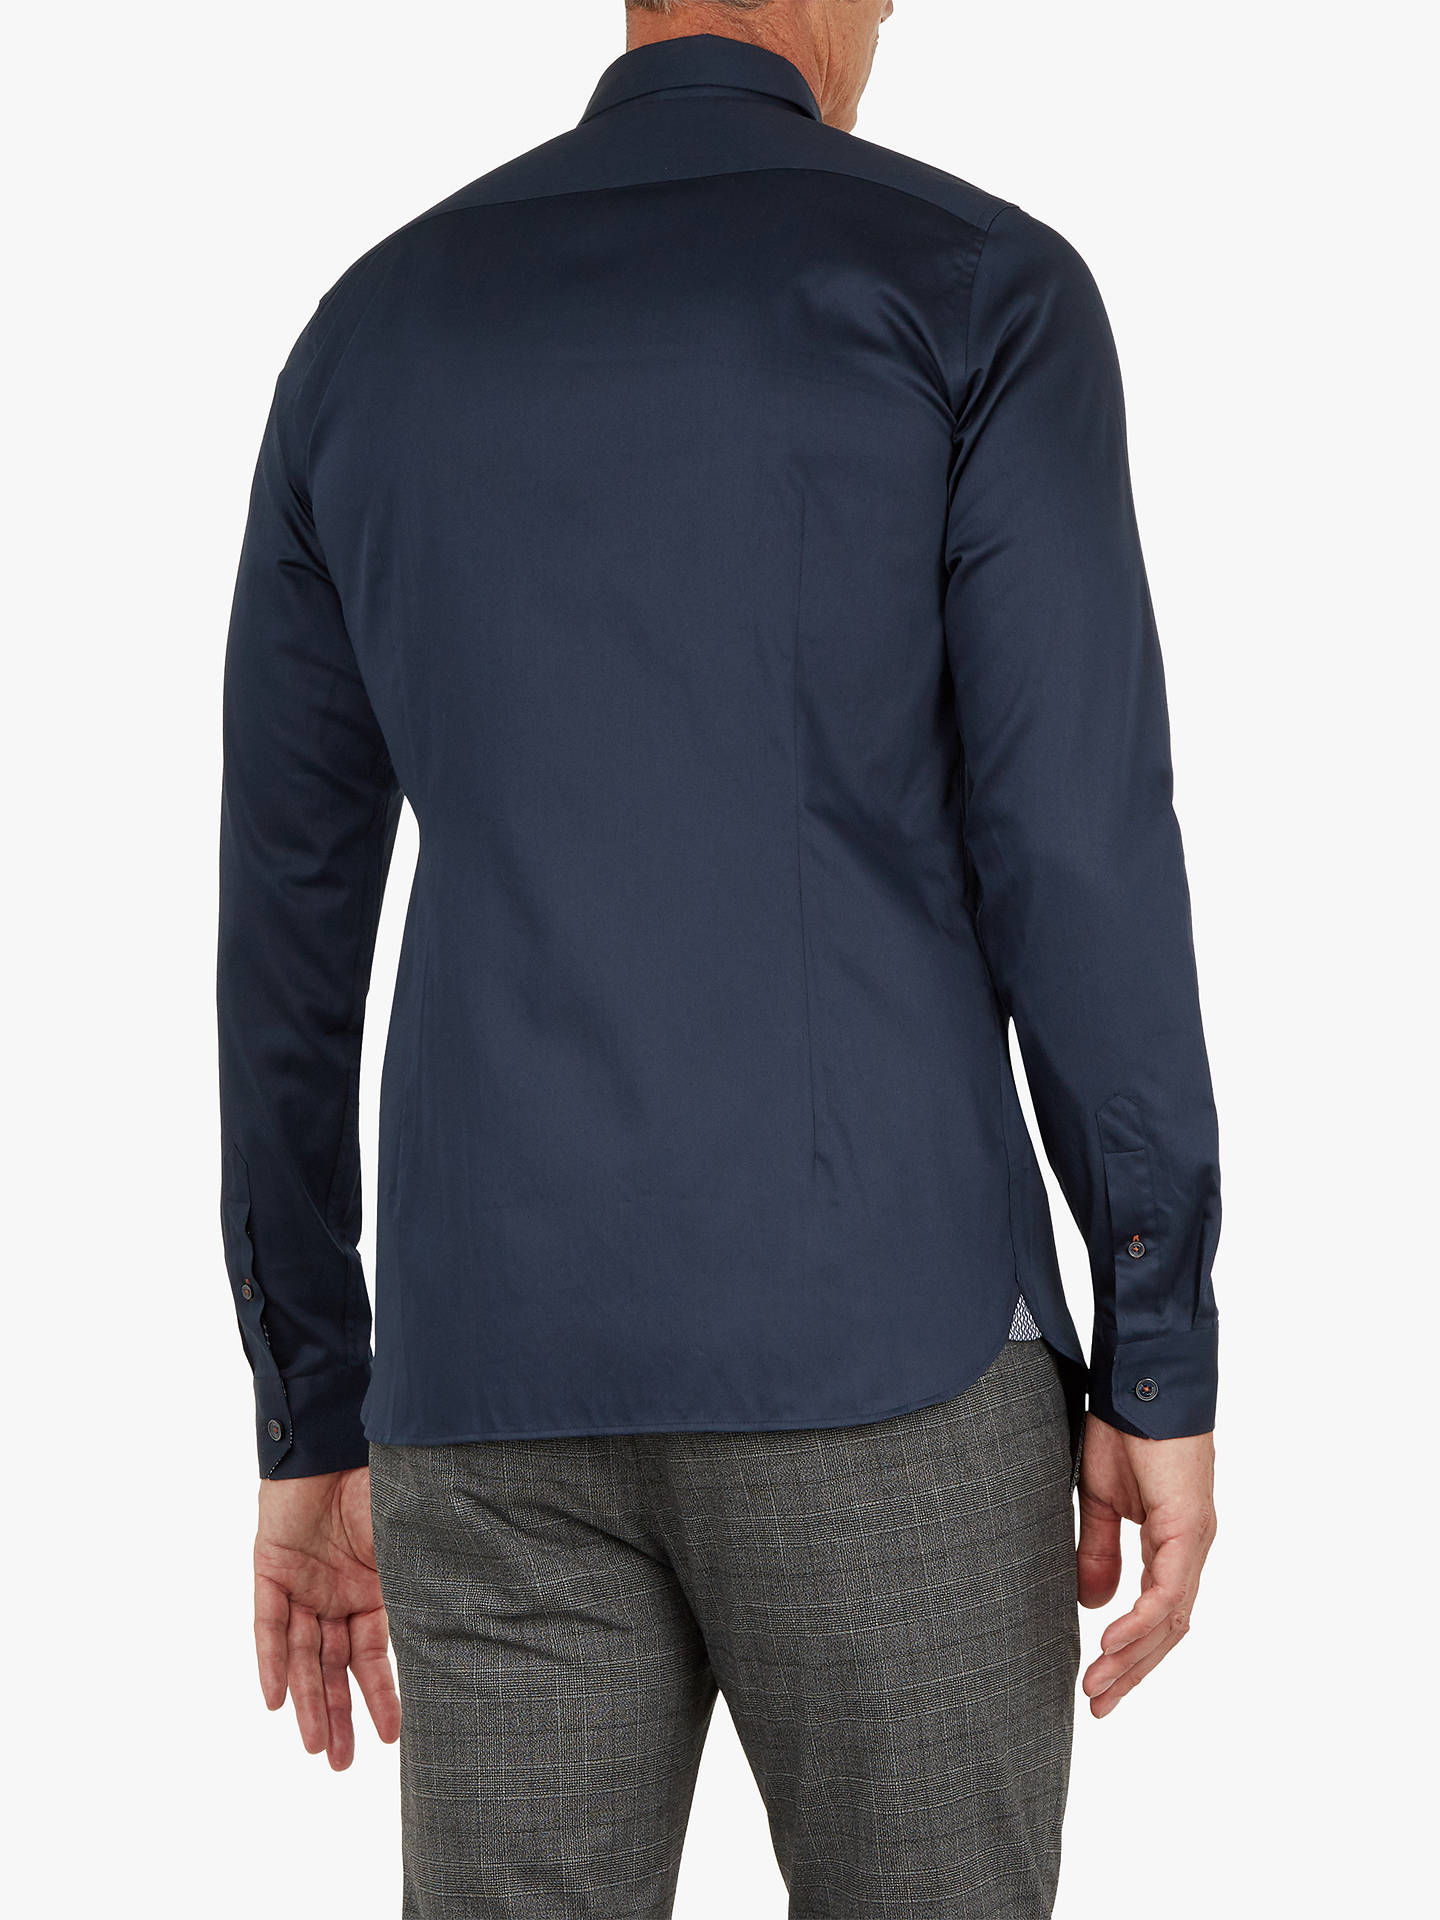 BuyTed Baker T for Tall Plate Long Sleeve Satin Stretch Shirt, Navy, 16.5 Online at johnlewis.com